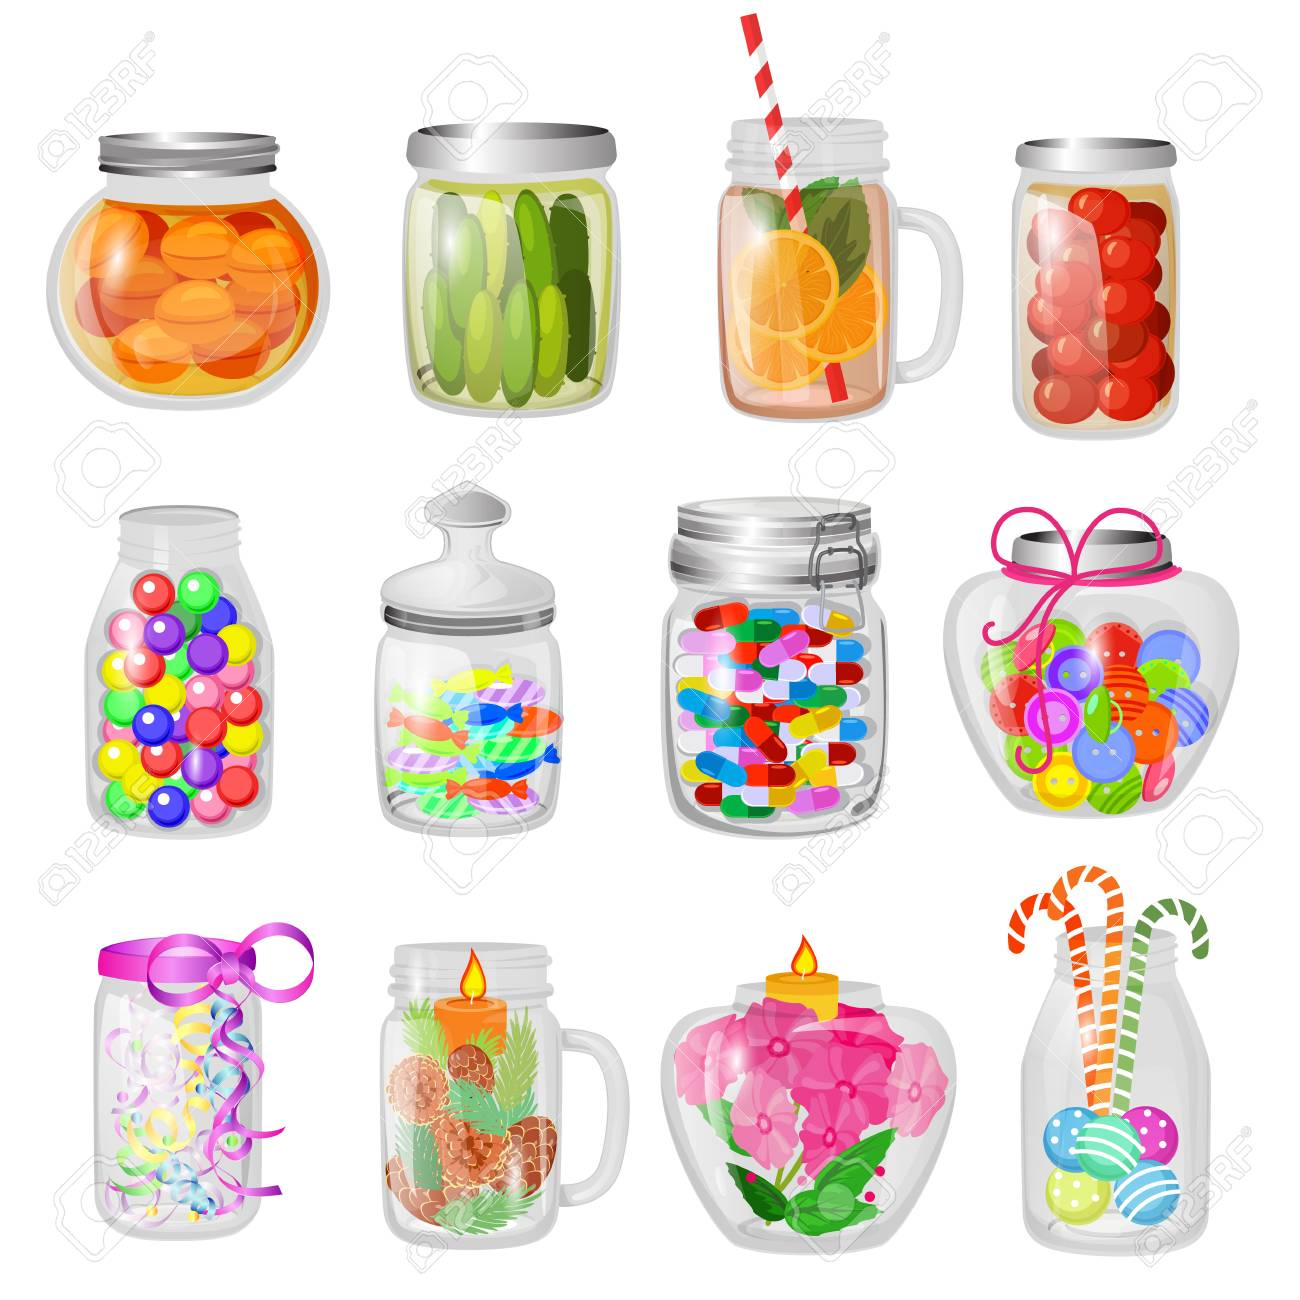 Glass jar vector jam or sweet jelly in mason glassware with lid or cover for canning and preserving illustration glassful set of cuppingglass with conservation isolated on white background. - 114784832